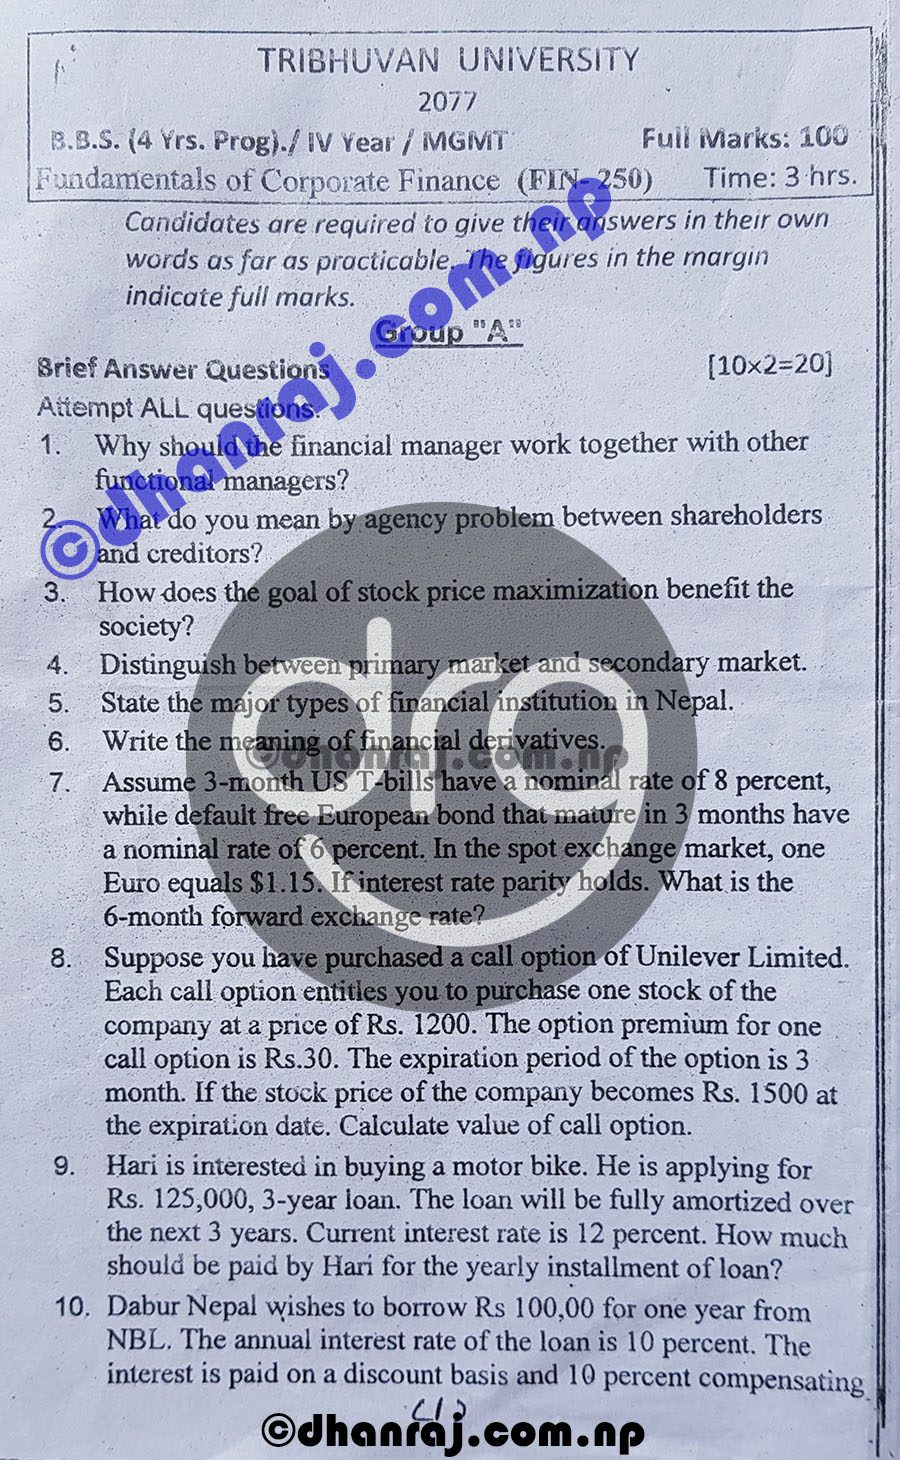 Fundamentals-Of-Corporate-Finance-FIN-250-IV-Year-Exam-Question-Paper-2077-BBS-TU